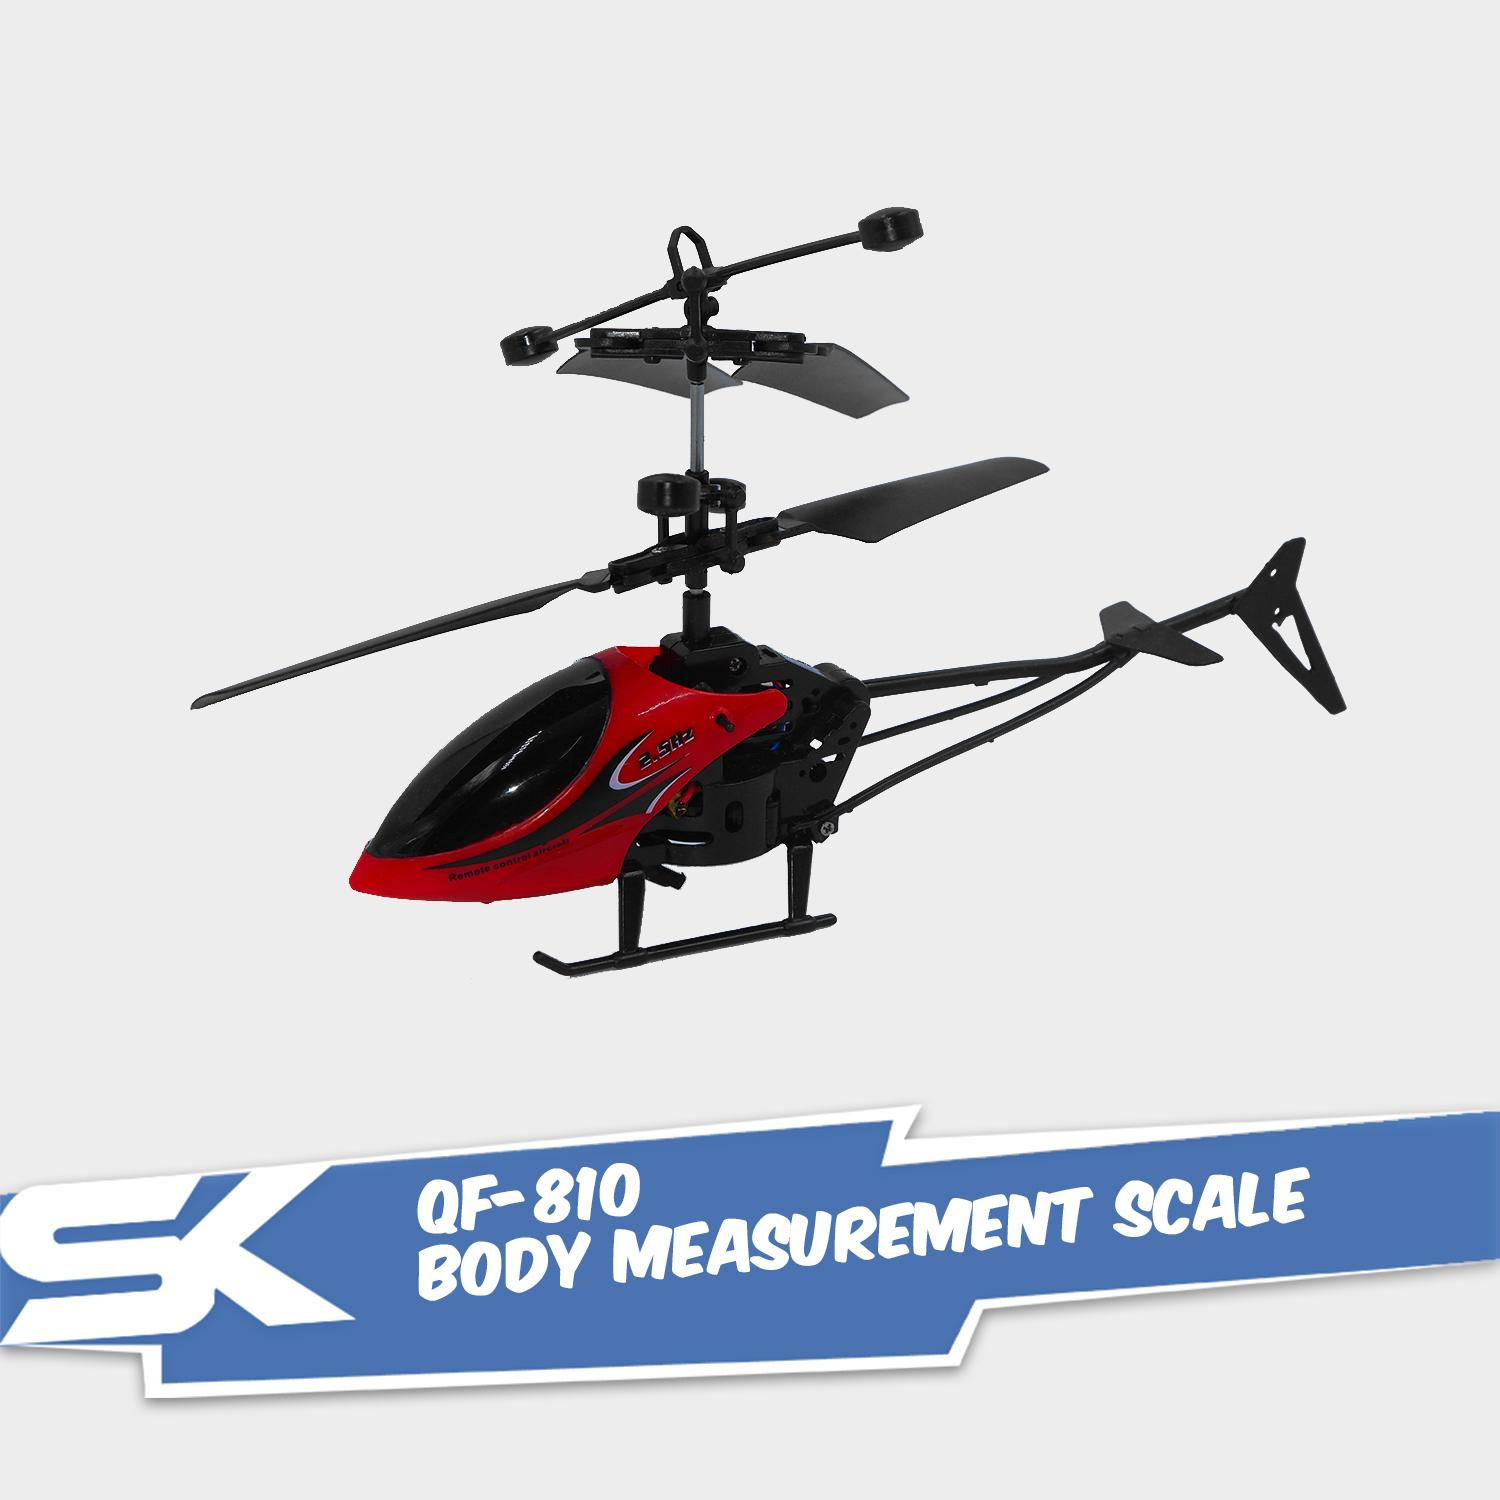 Qf-810 2.5 Super Speed Rc Helicopter By Steve Kyle Marketing Corporation.